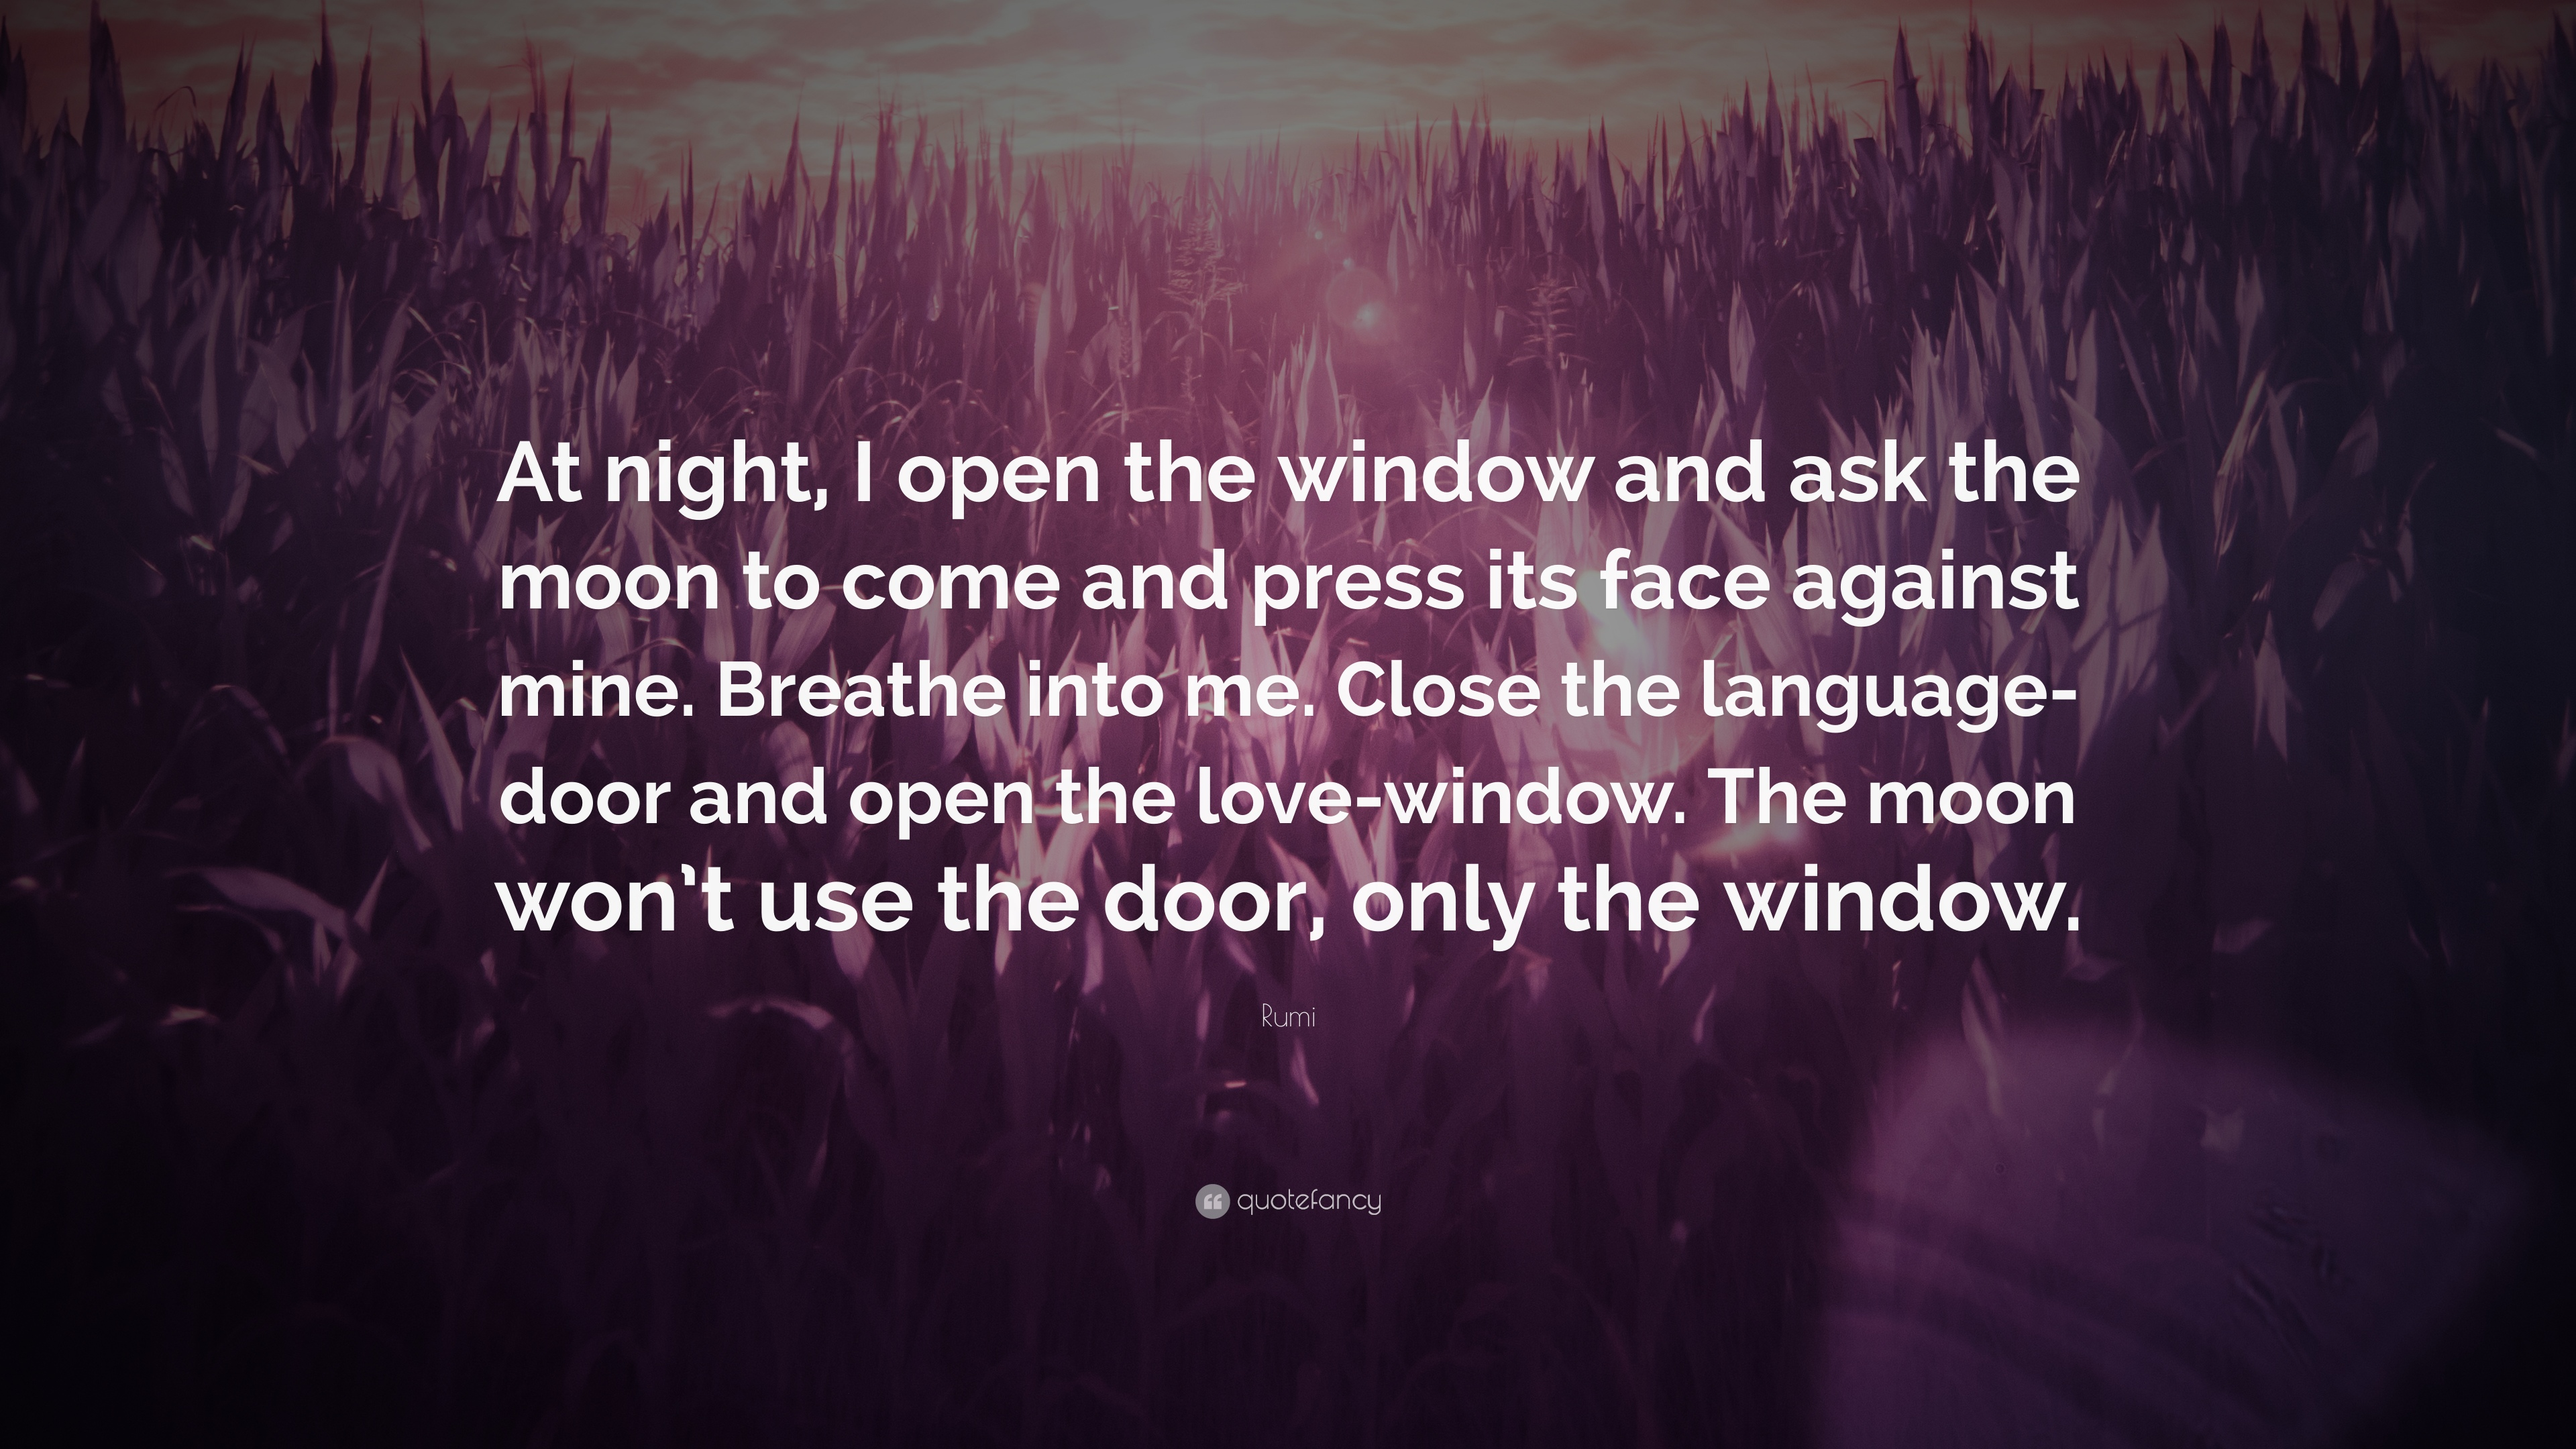 Rumi Quote \u201cAt night I open the window and ask the moon to & Rumi Quote: \u201cAt night I open the window and ask the moon to come ...